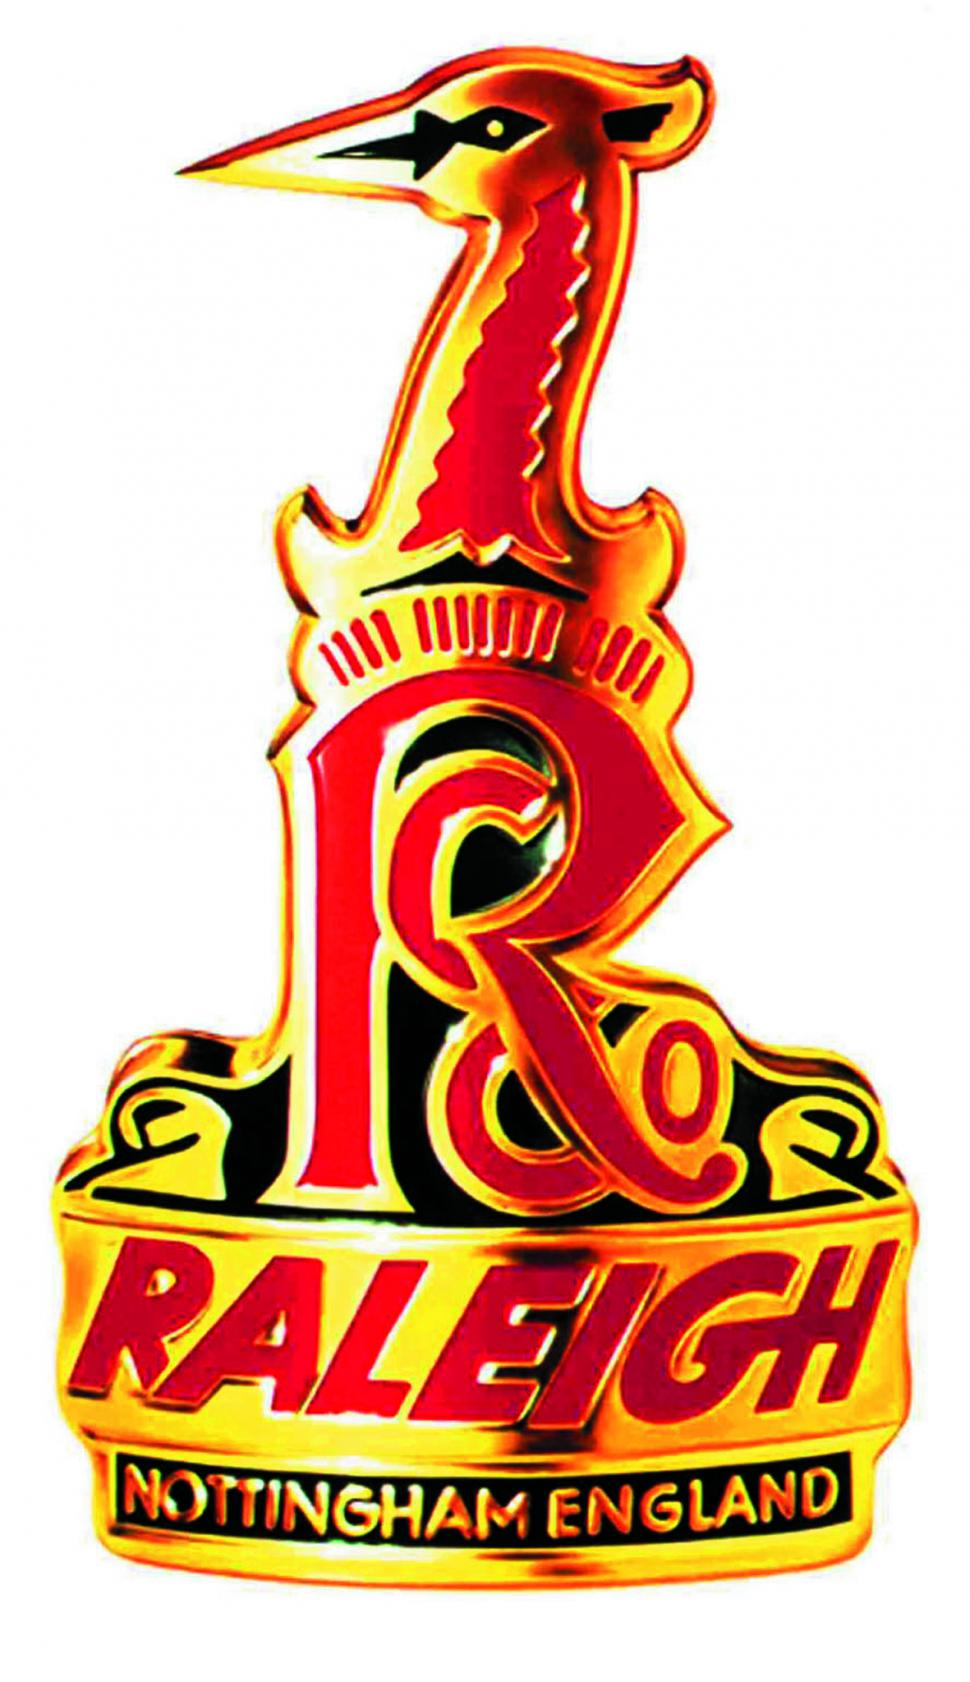 Raleigh headbadge logo